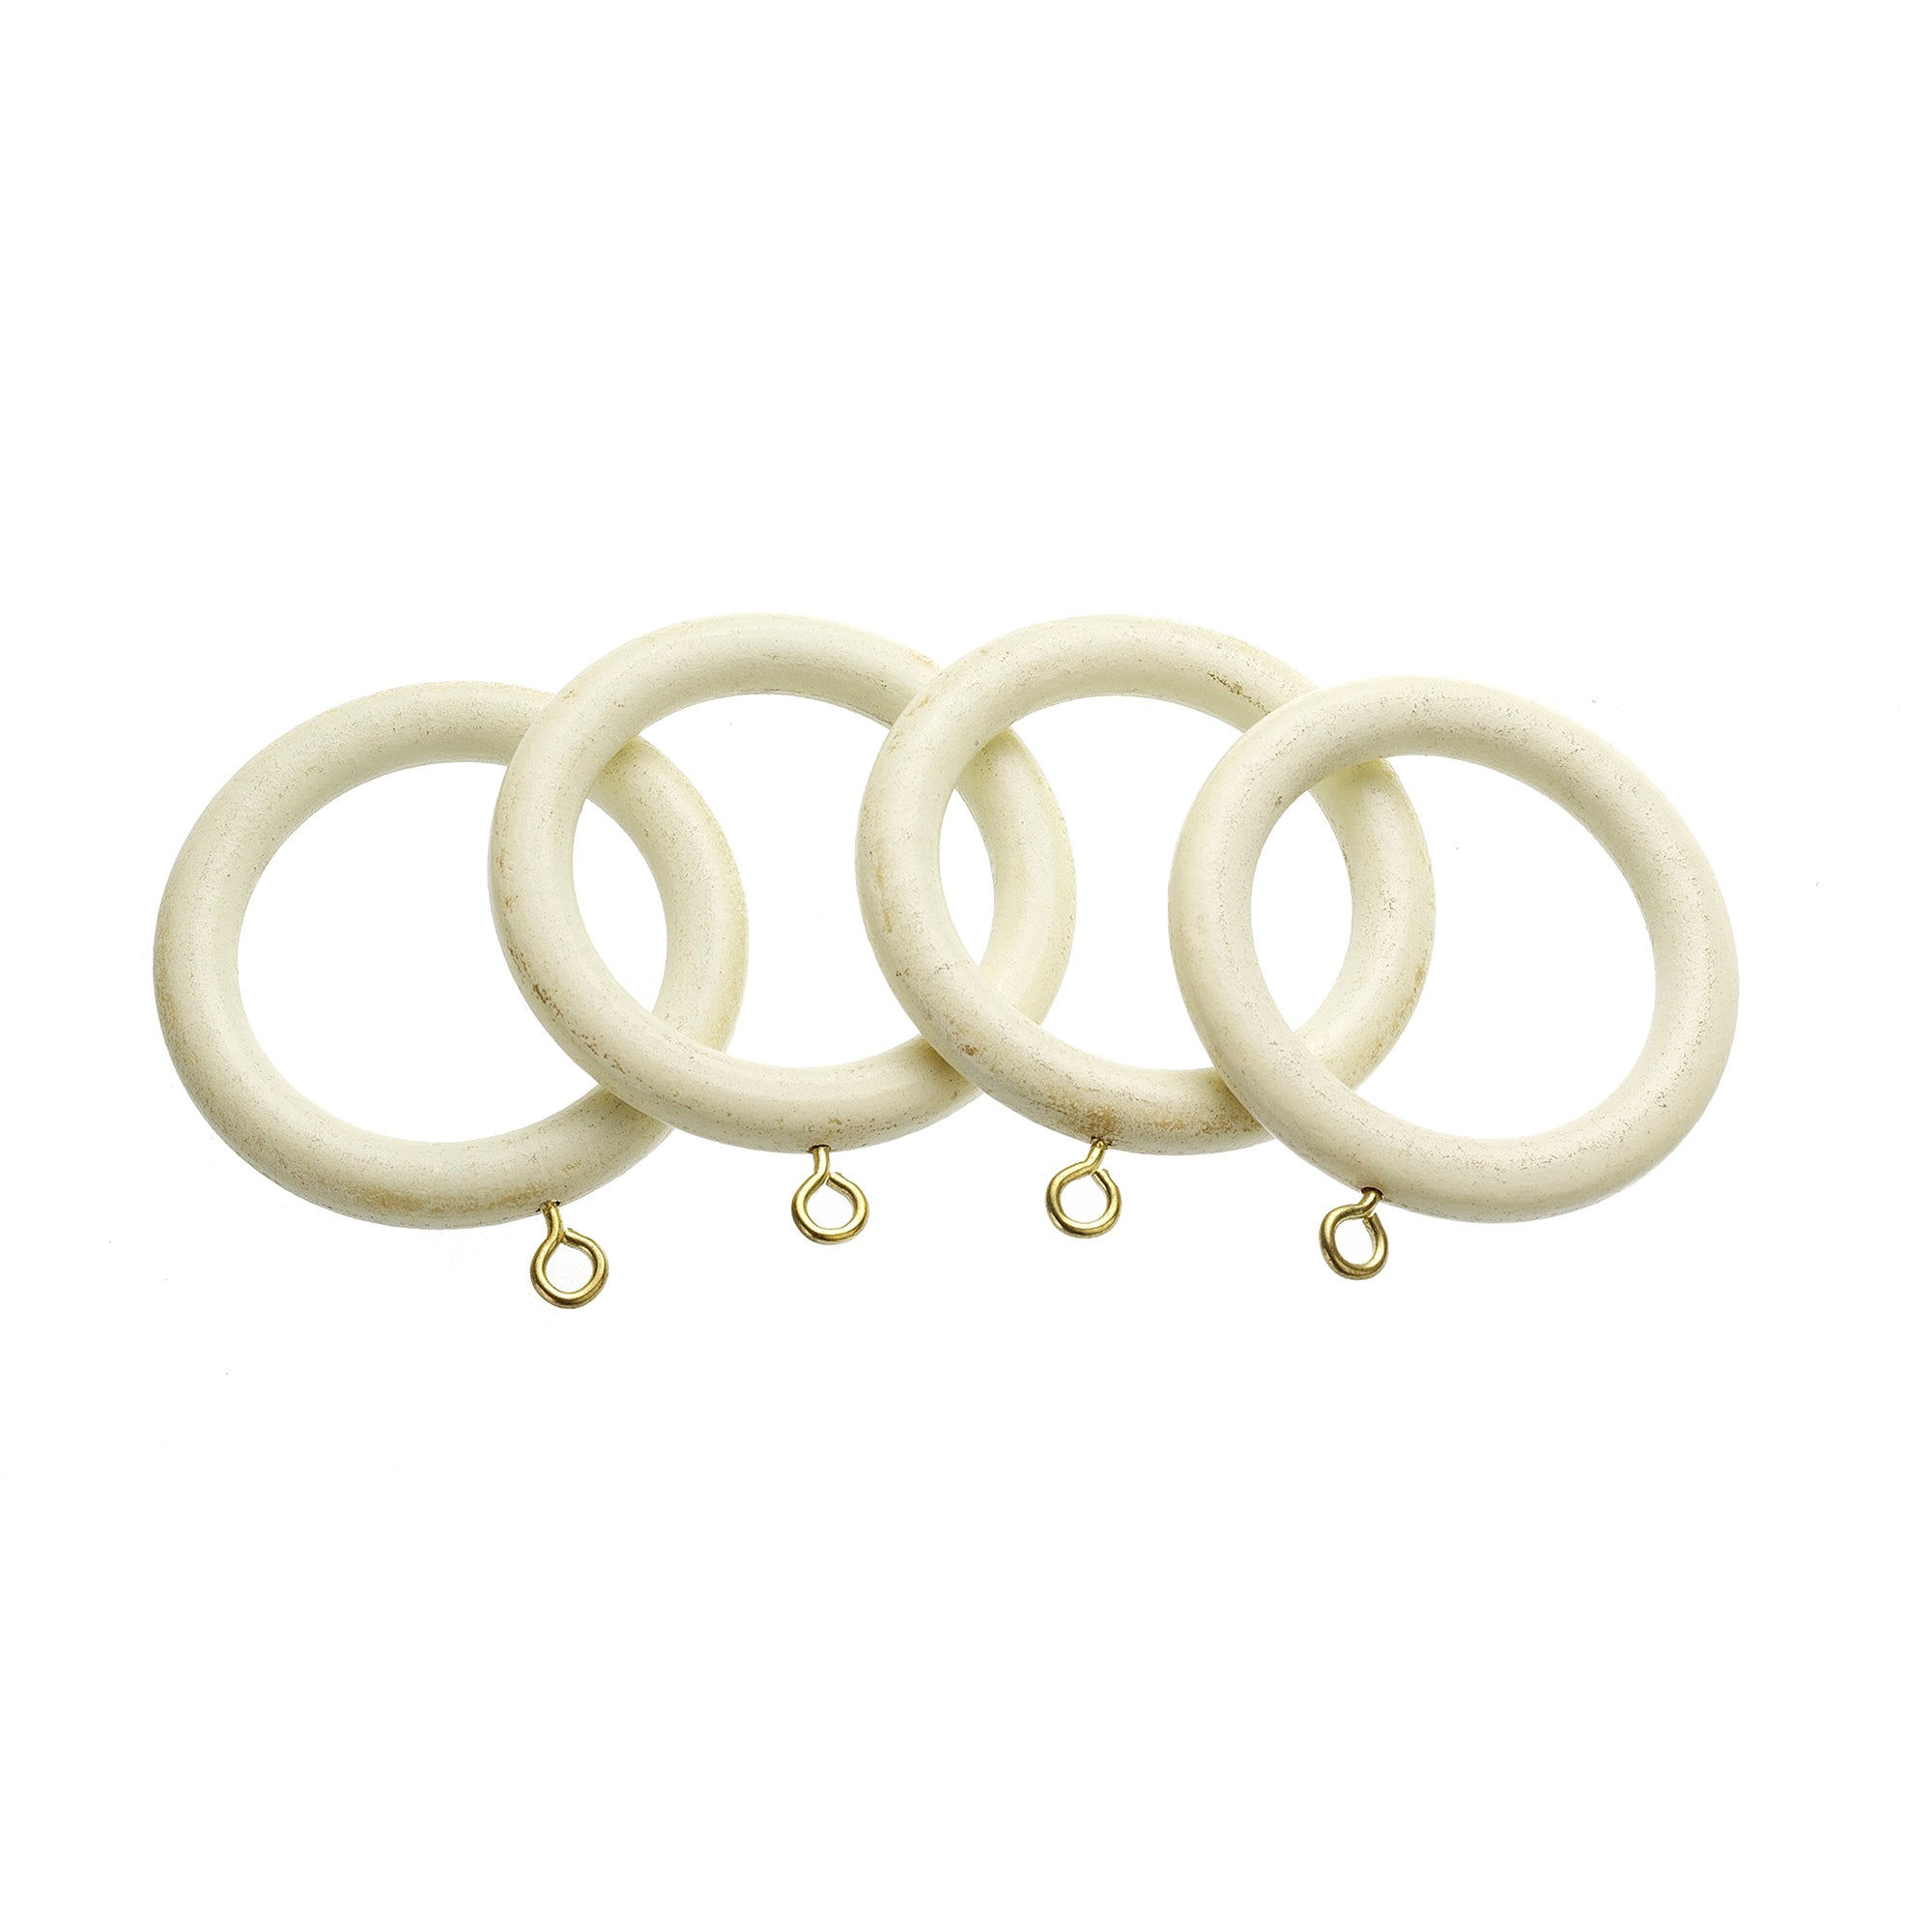 Antique White Swish Cambridge Collection Pack of 4 Curtain Rings